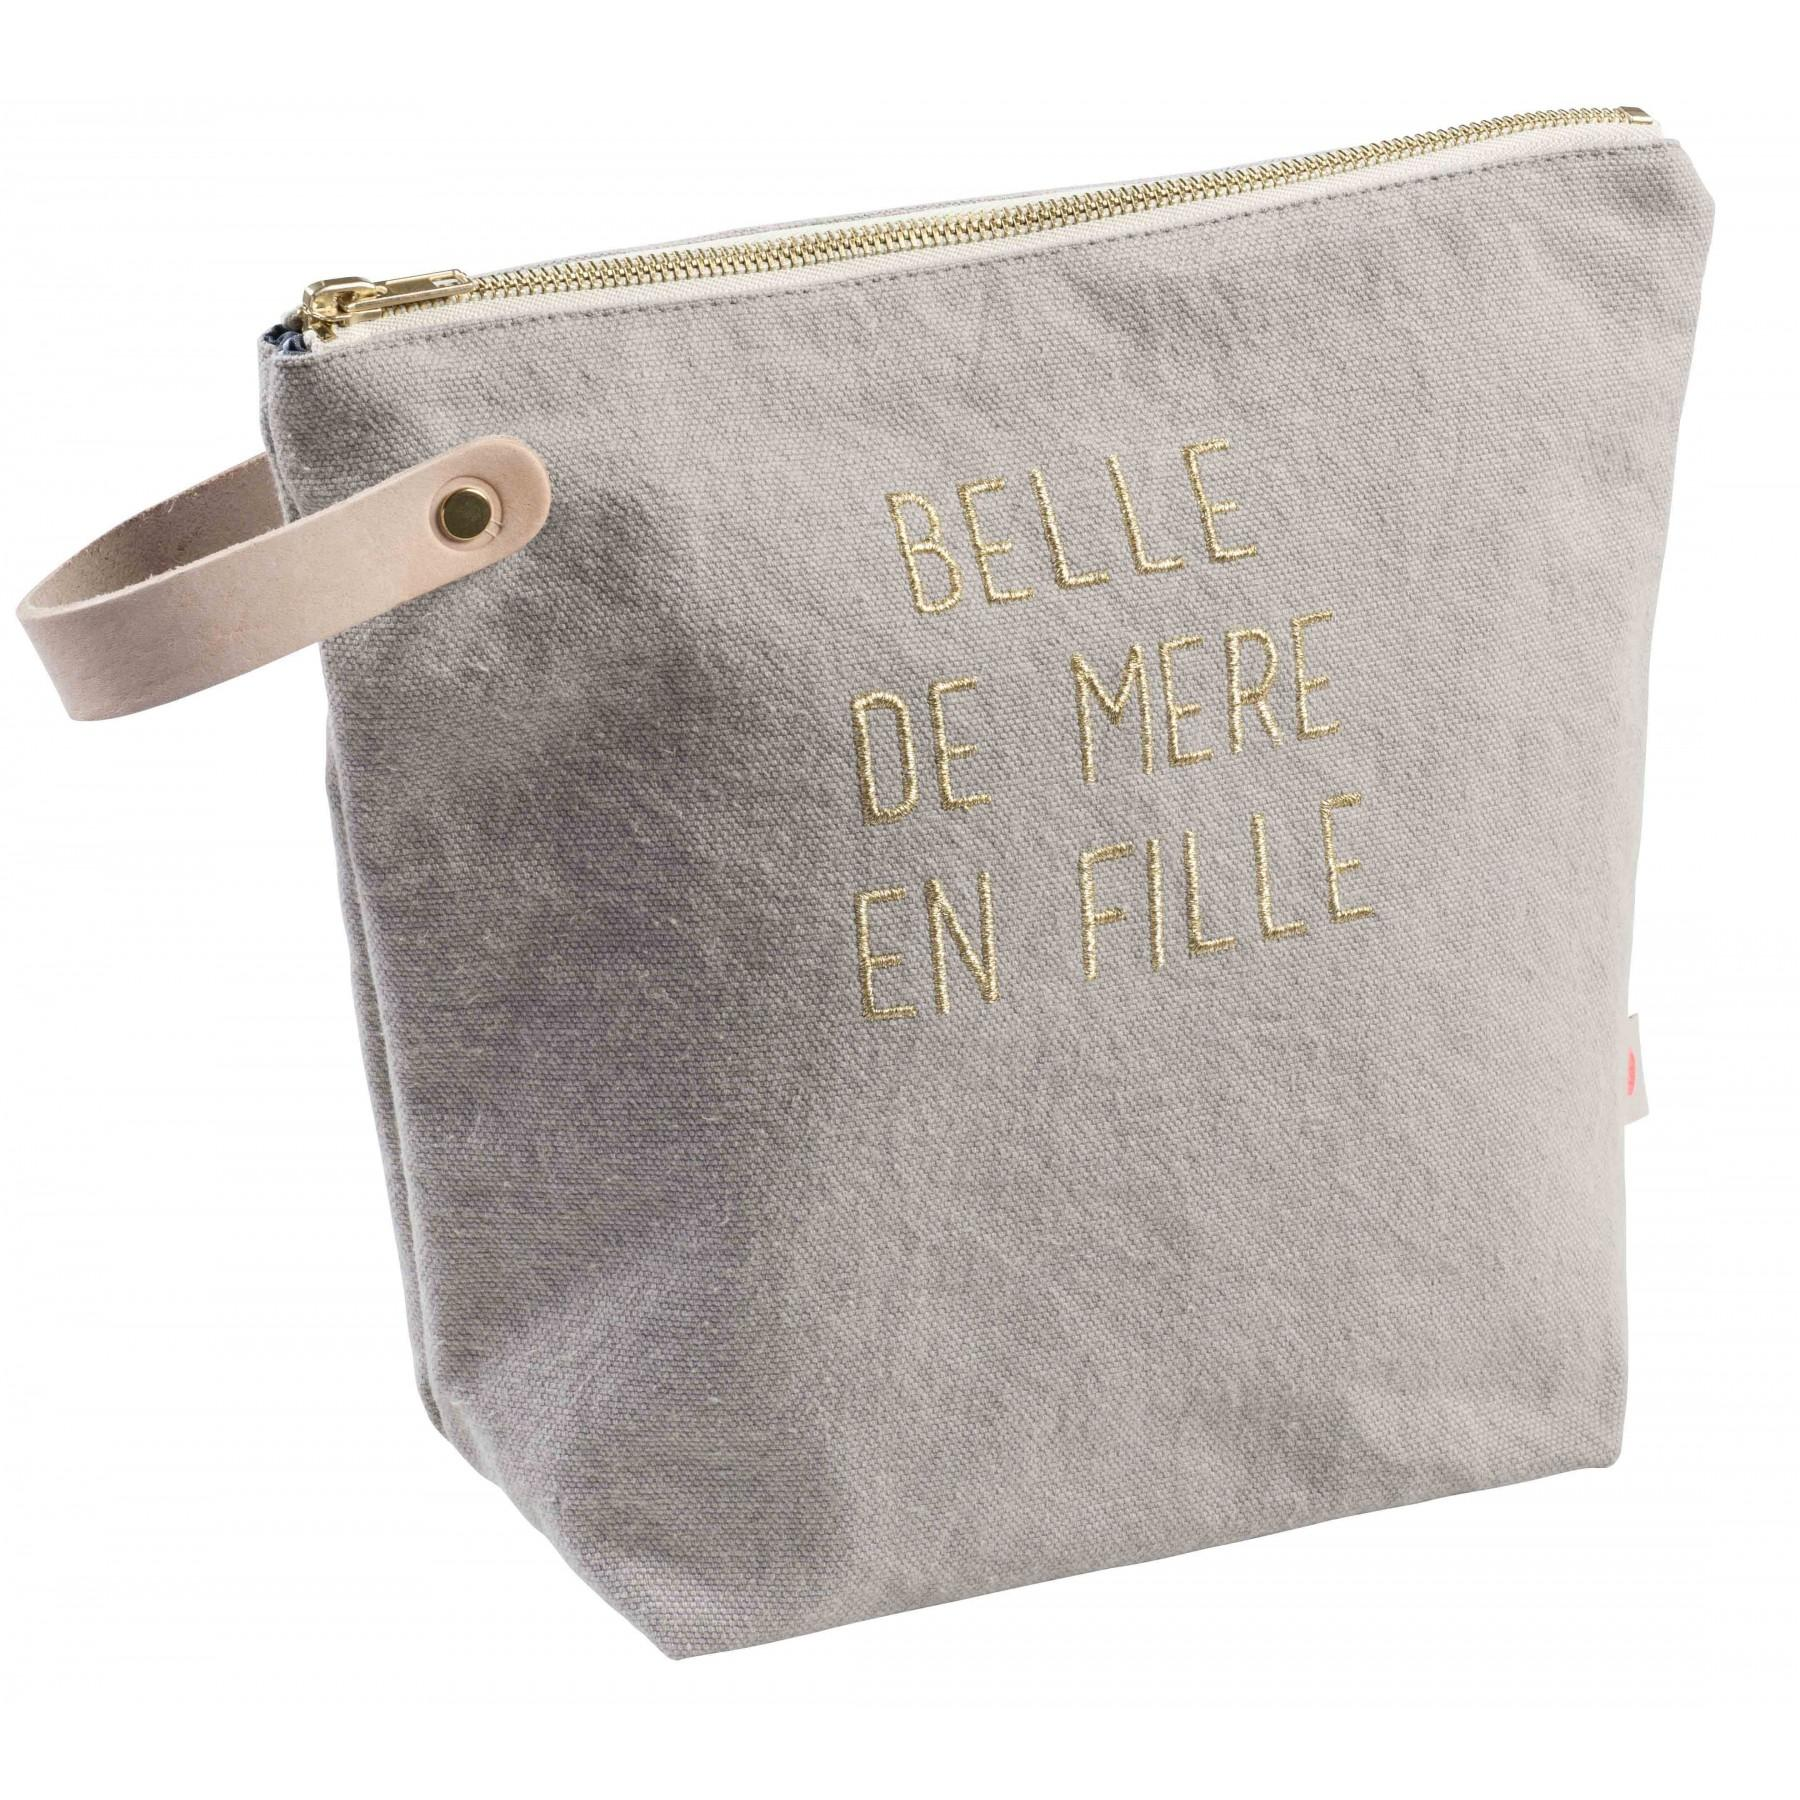 TOILETRY BAG BELLE FLEUR DE SEL GM